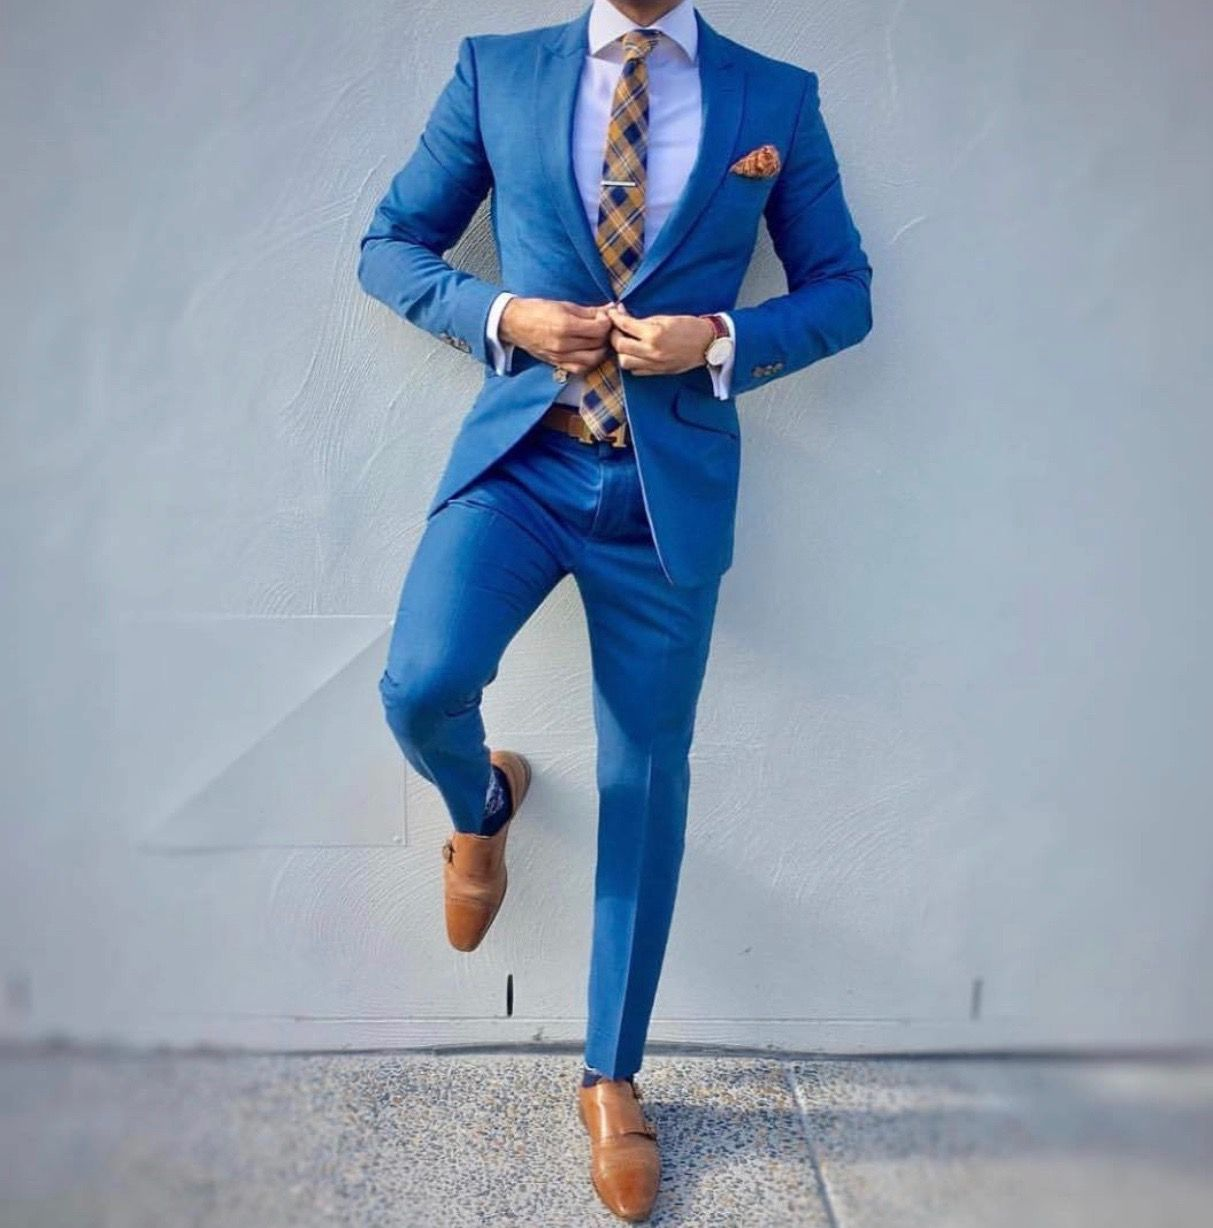 Pin by Ionel Dura on ionut | Pinterest | Wedding suits, Men\'s ...